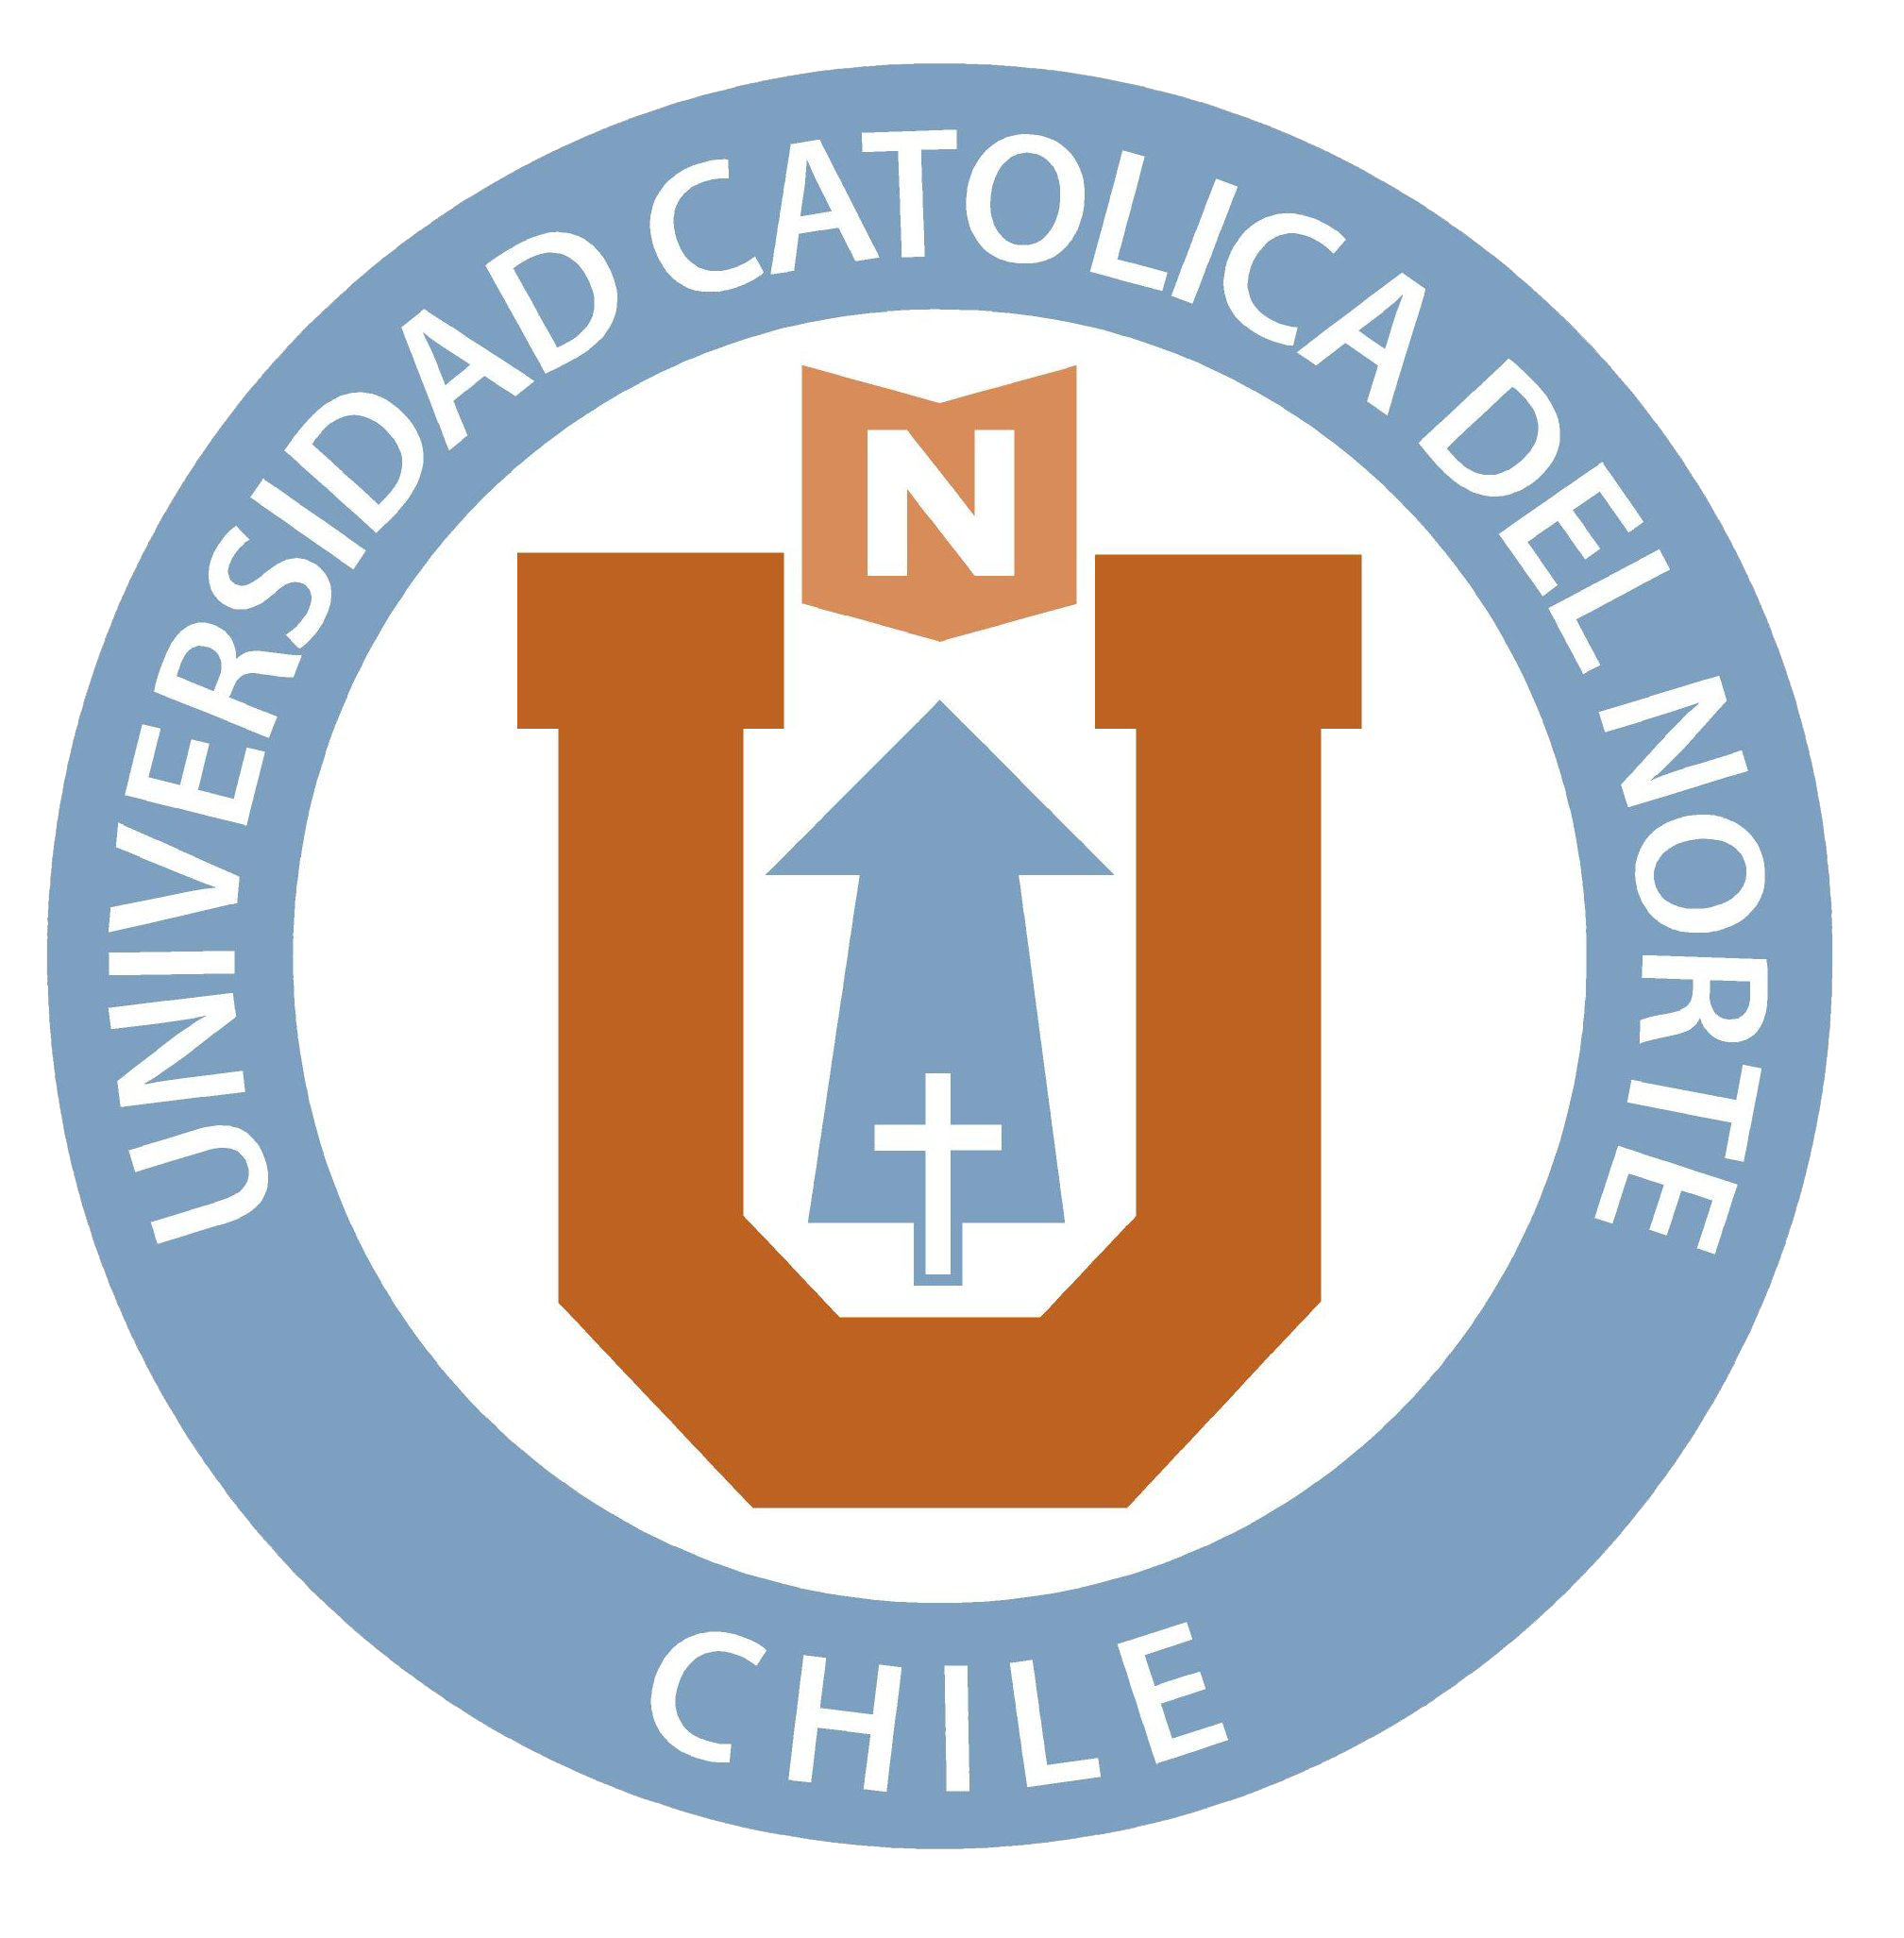 Universidad-Católica-del-Norte